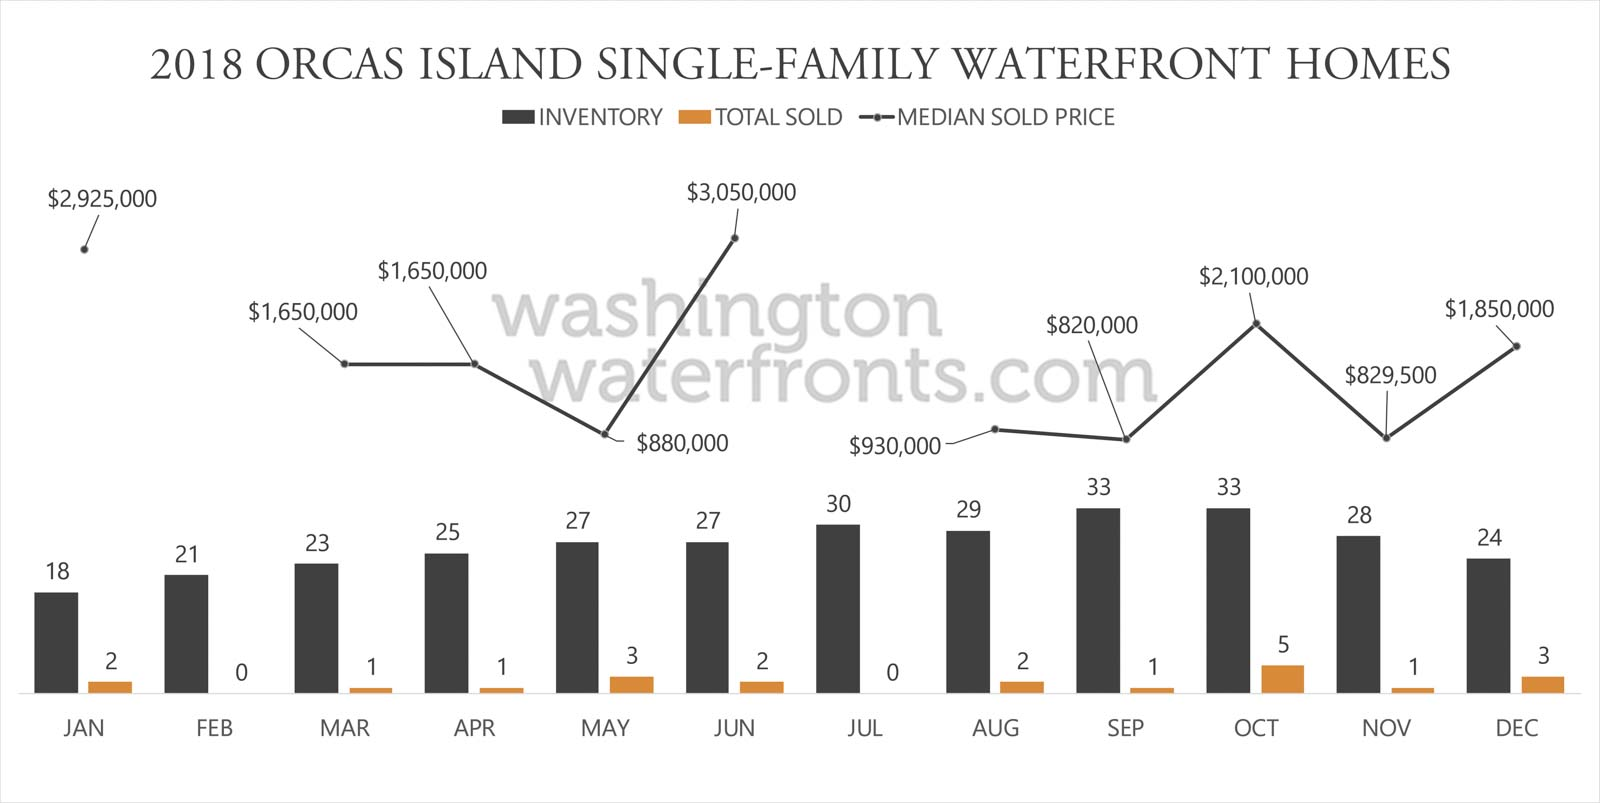 Orcas Island Waterfront Inventory